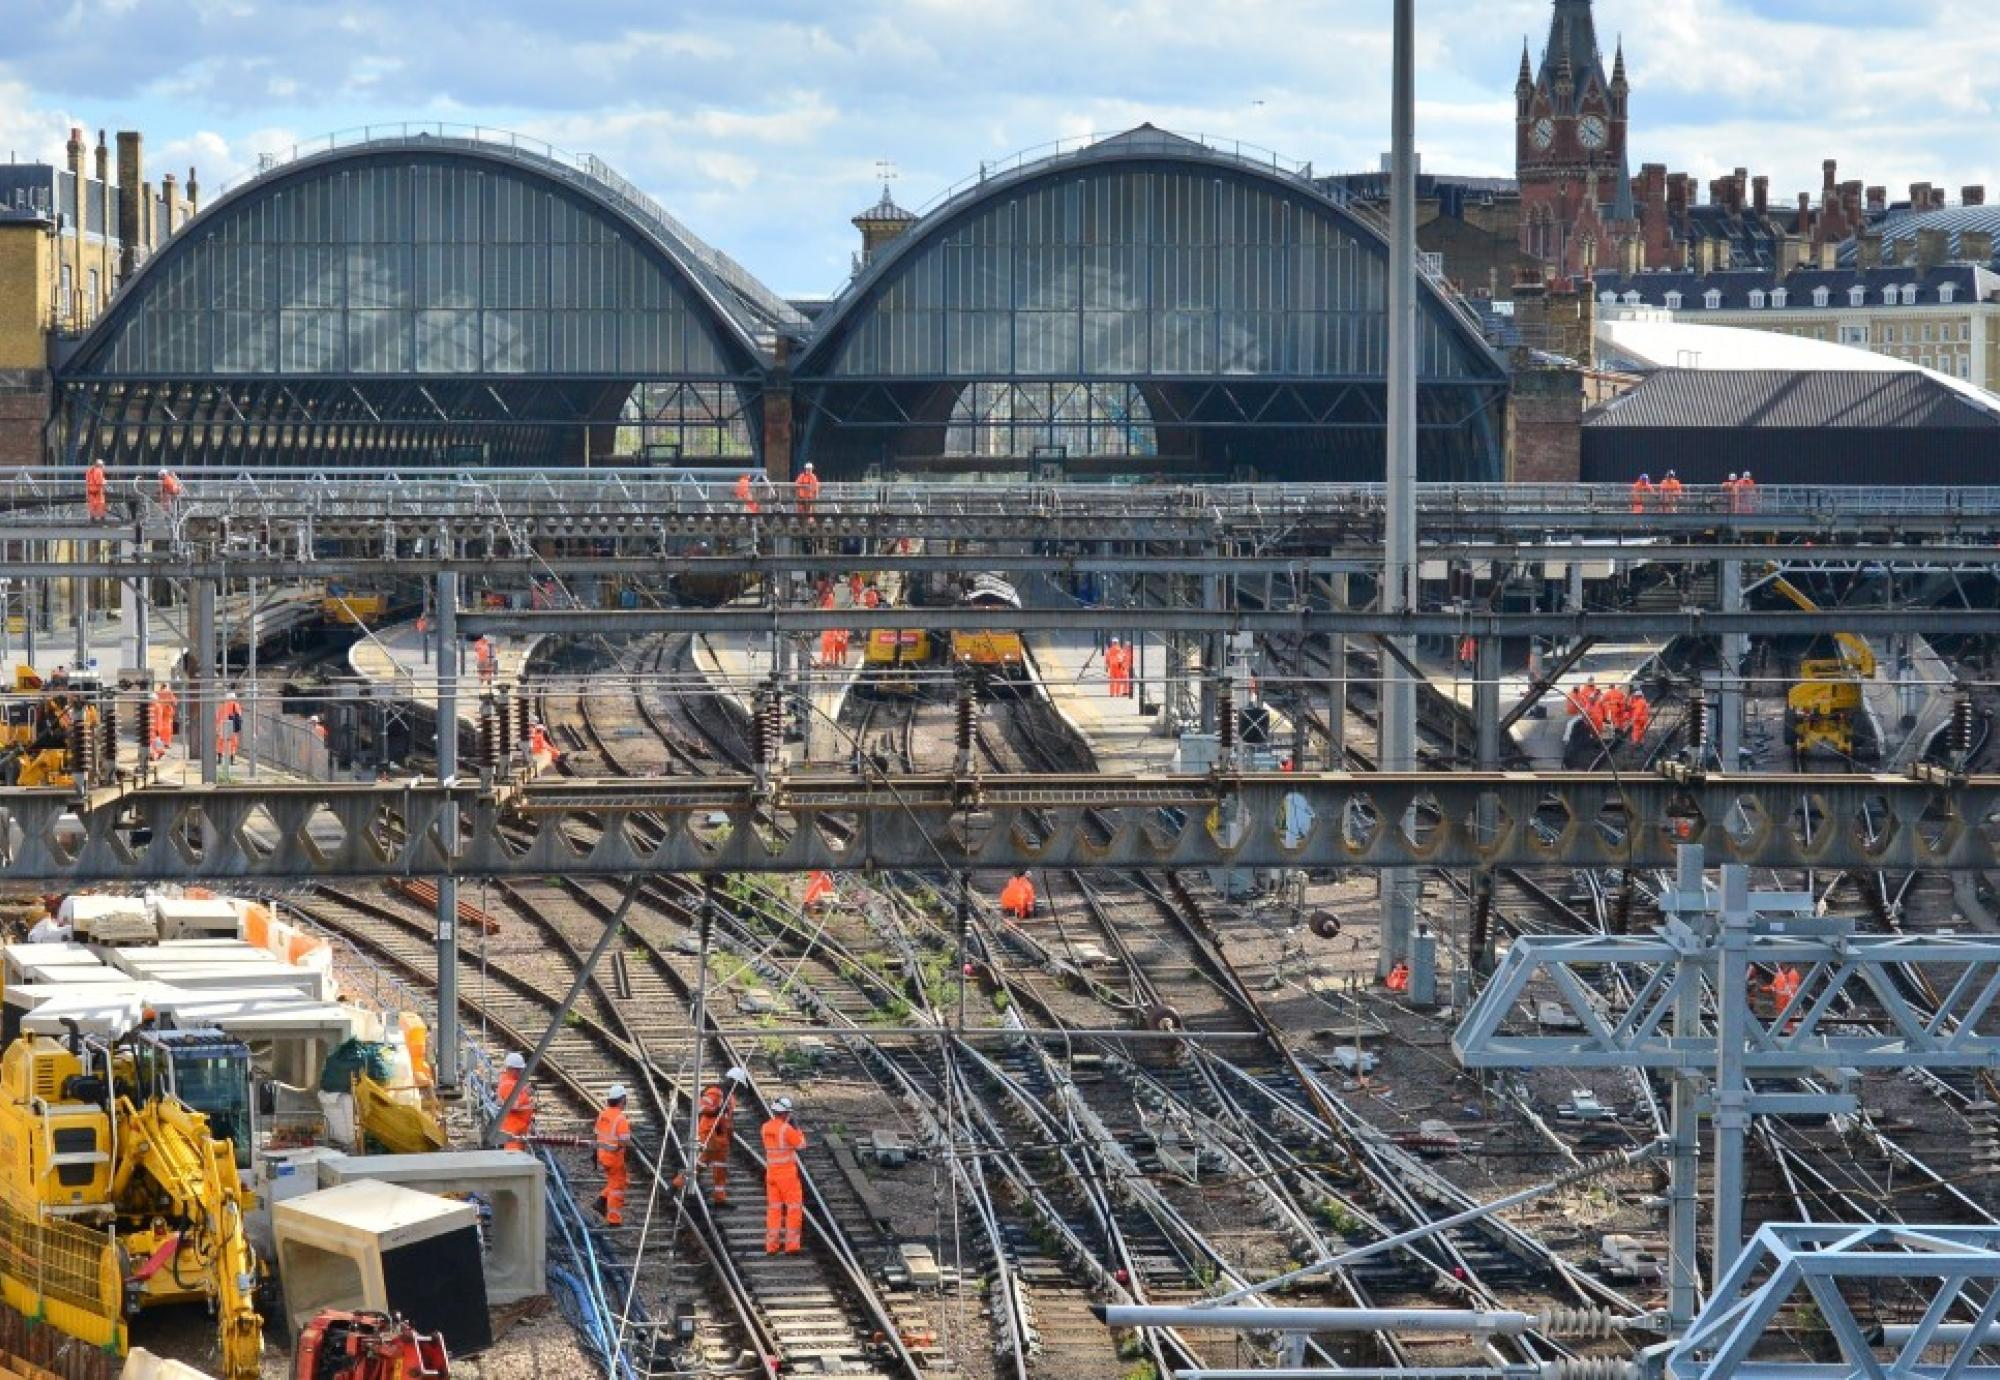 Kings Cross, where major work is taking place